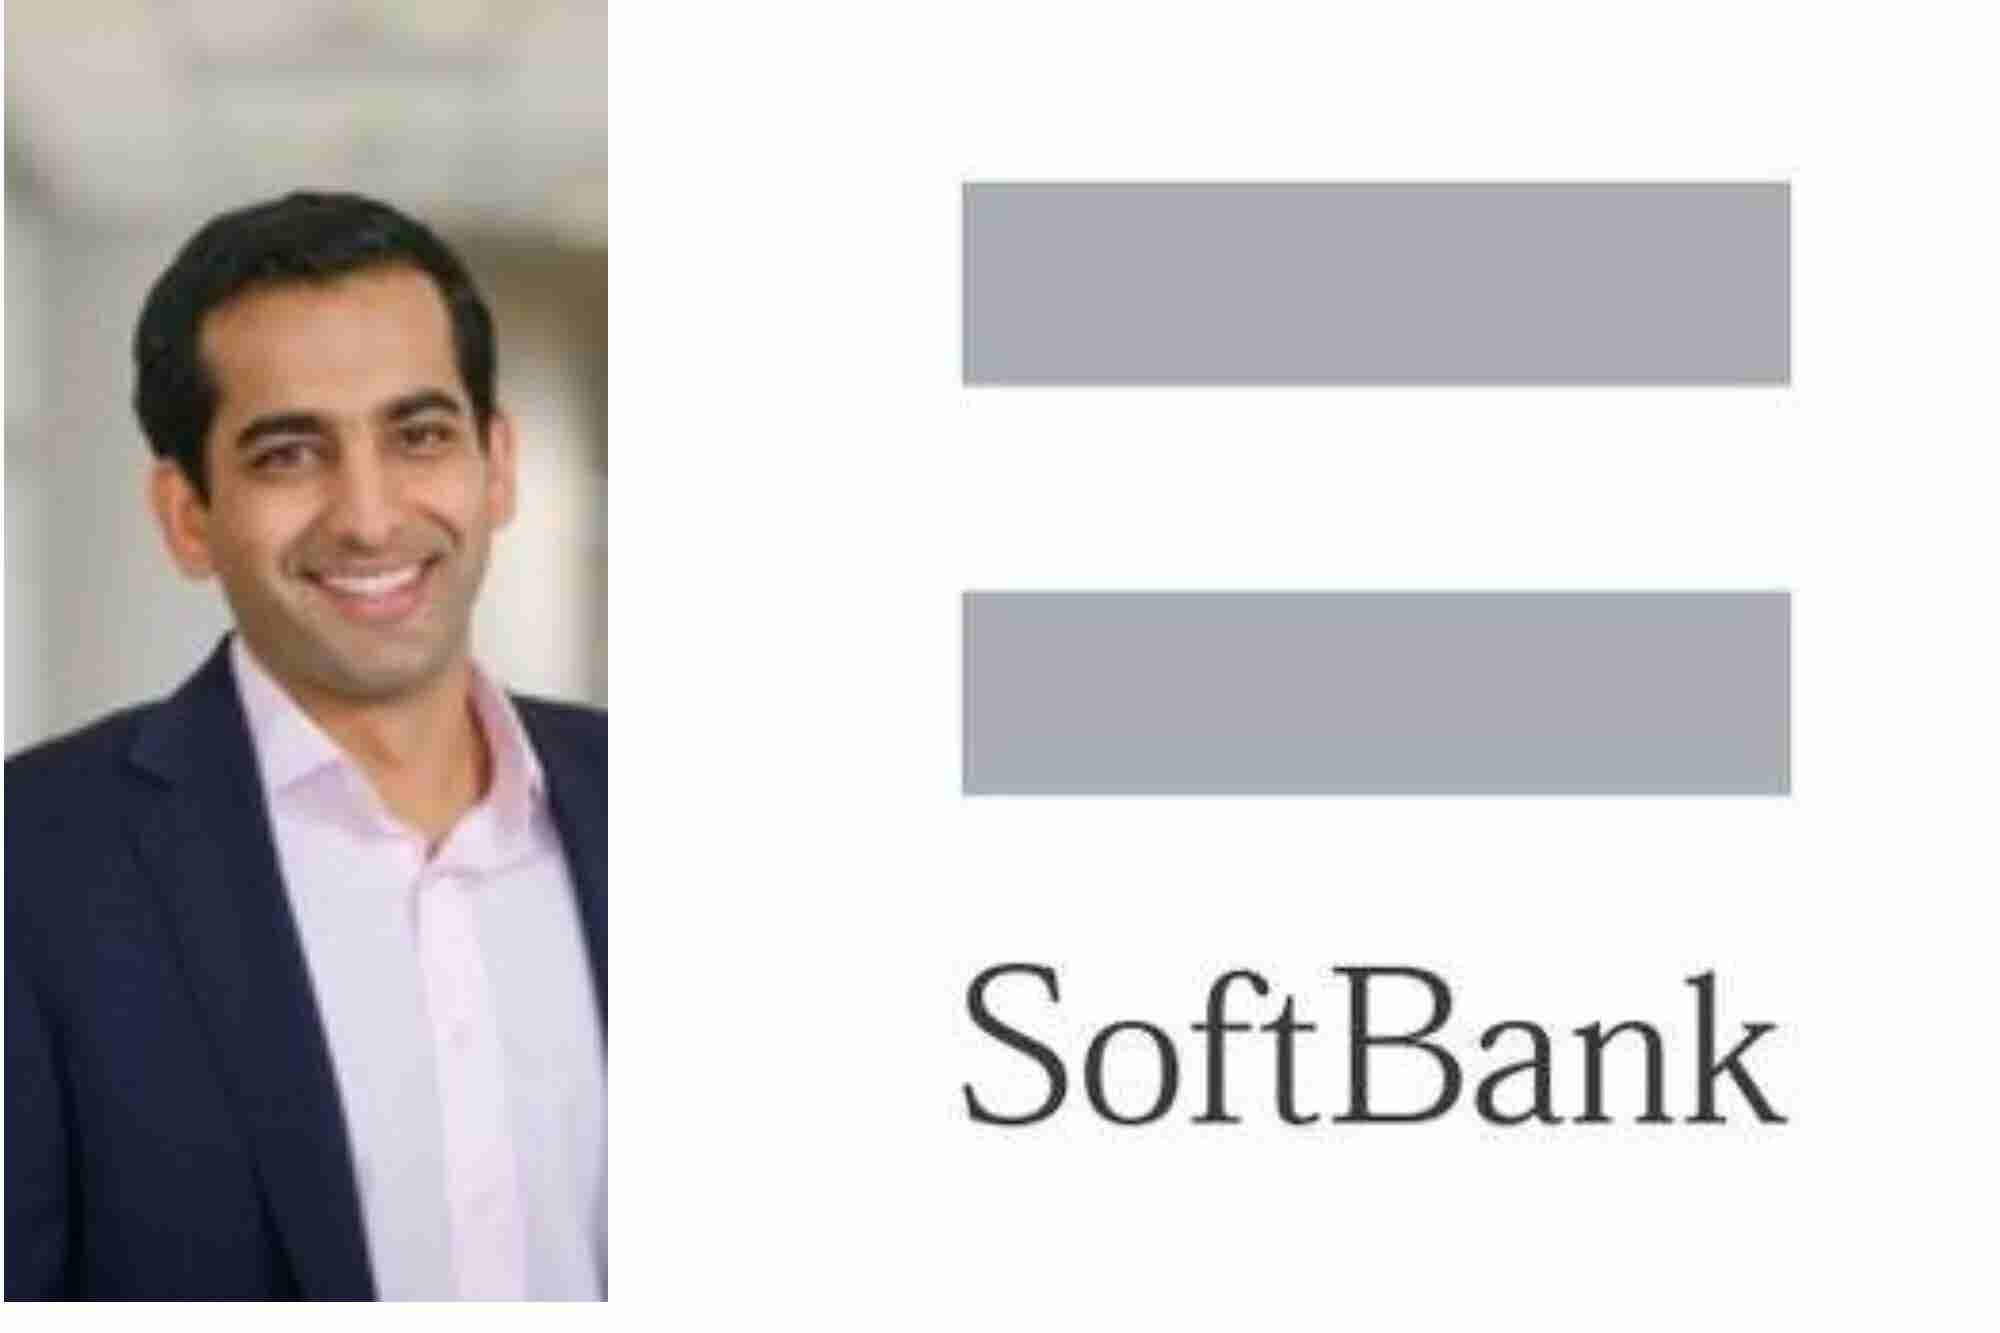 SoftBank Appoints Sumer Juneja as India Head